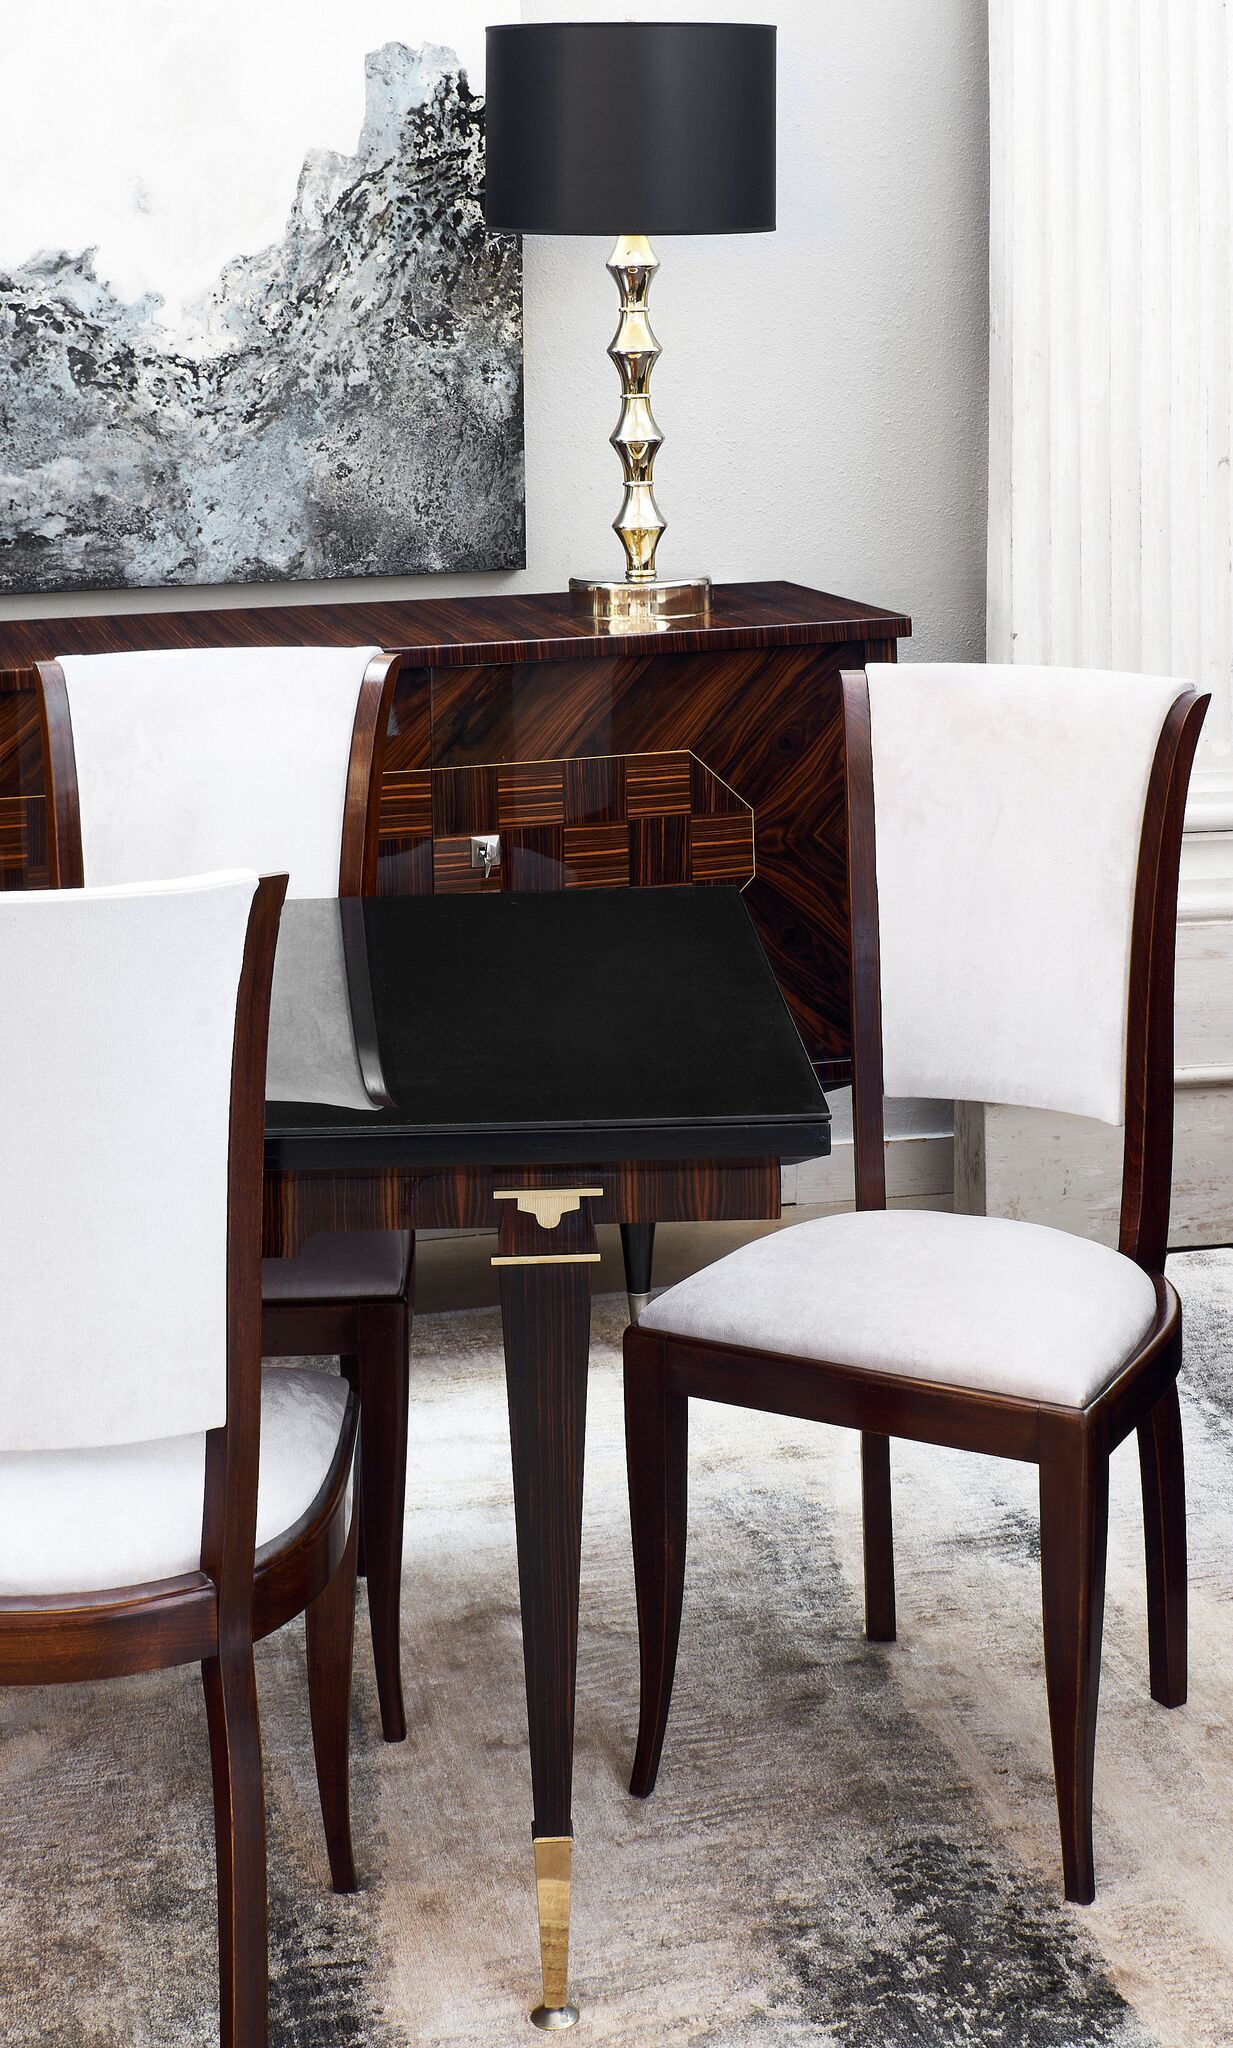 Art Deco Dining Chairs With Mid Century Modern Macassar Of Ebony Table And Buffet